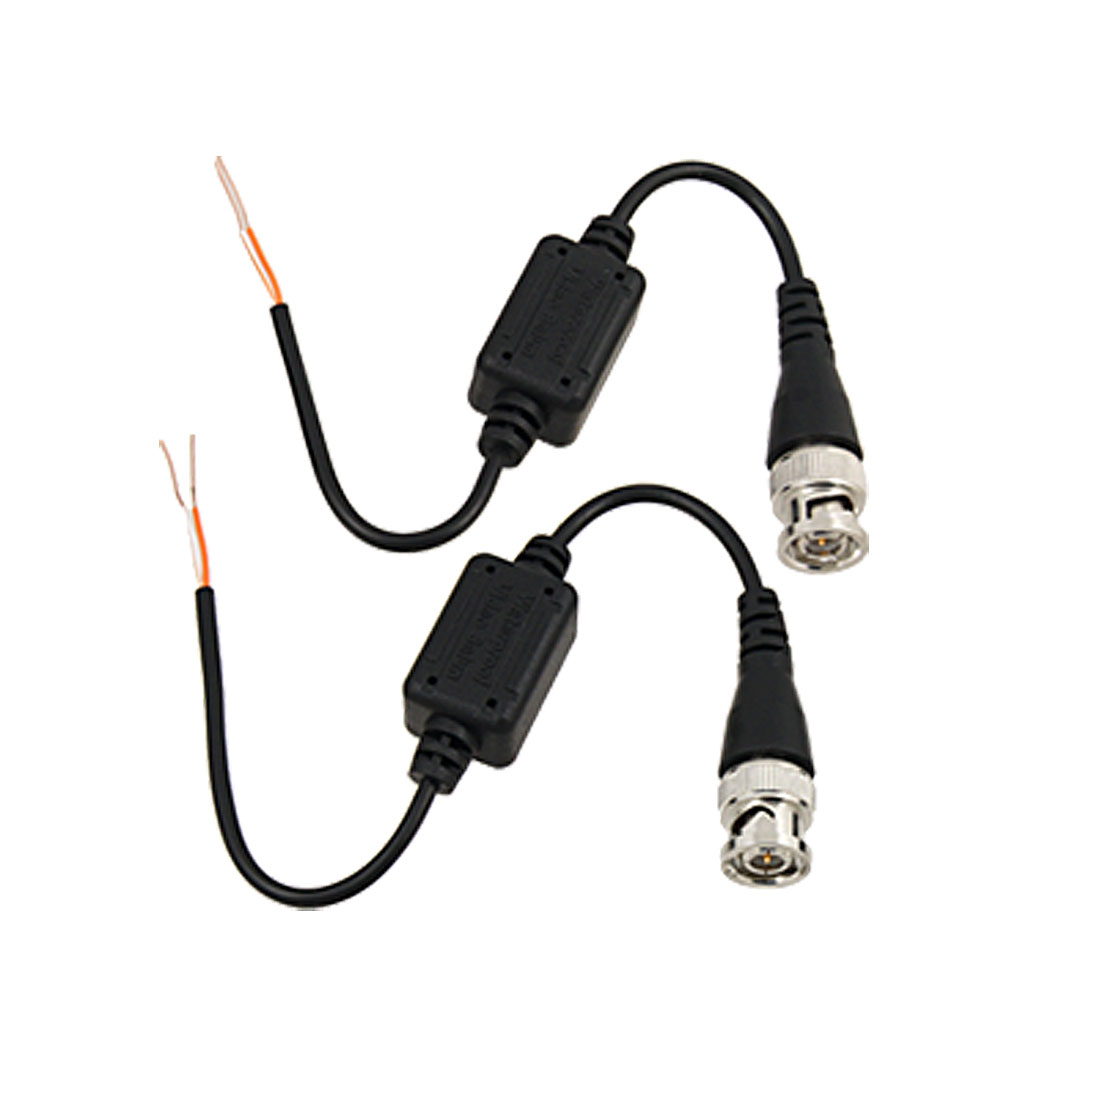 2 x 1Ch CCTV Security Camera Passive Waterproof Video Balun Transceiver